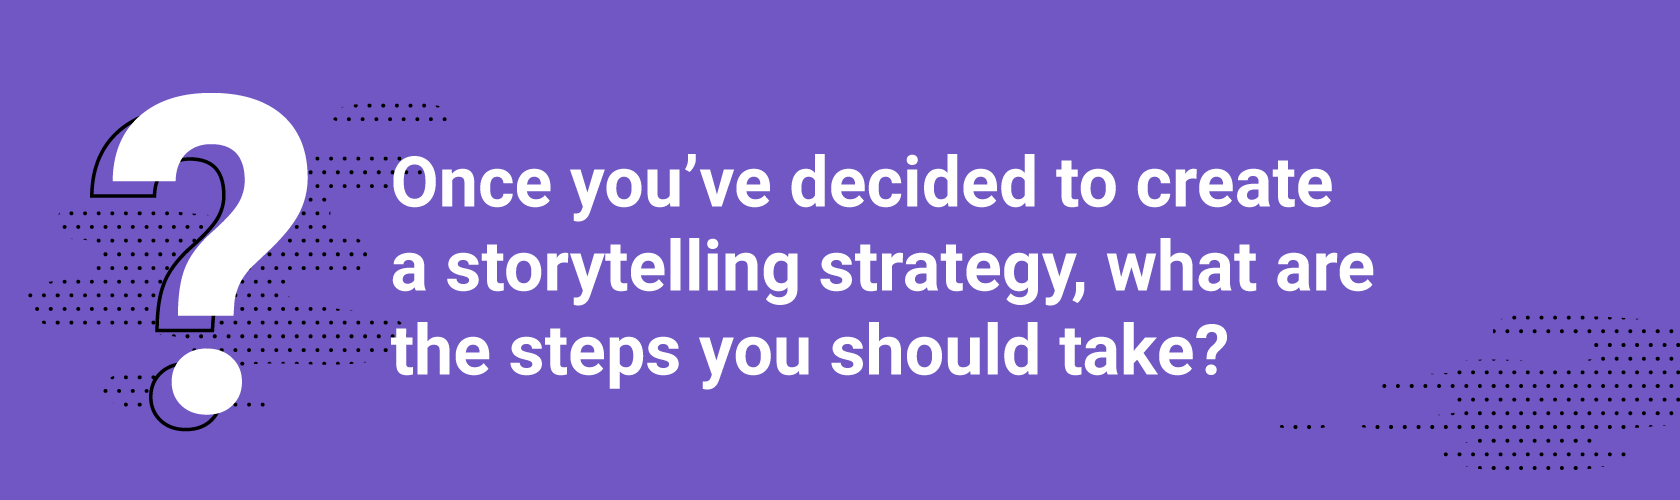 Q2. Once you've decided to create a storytelling strategy, what are the steps you should take?